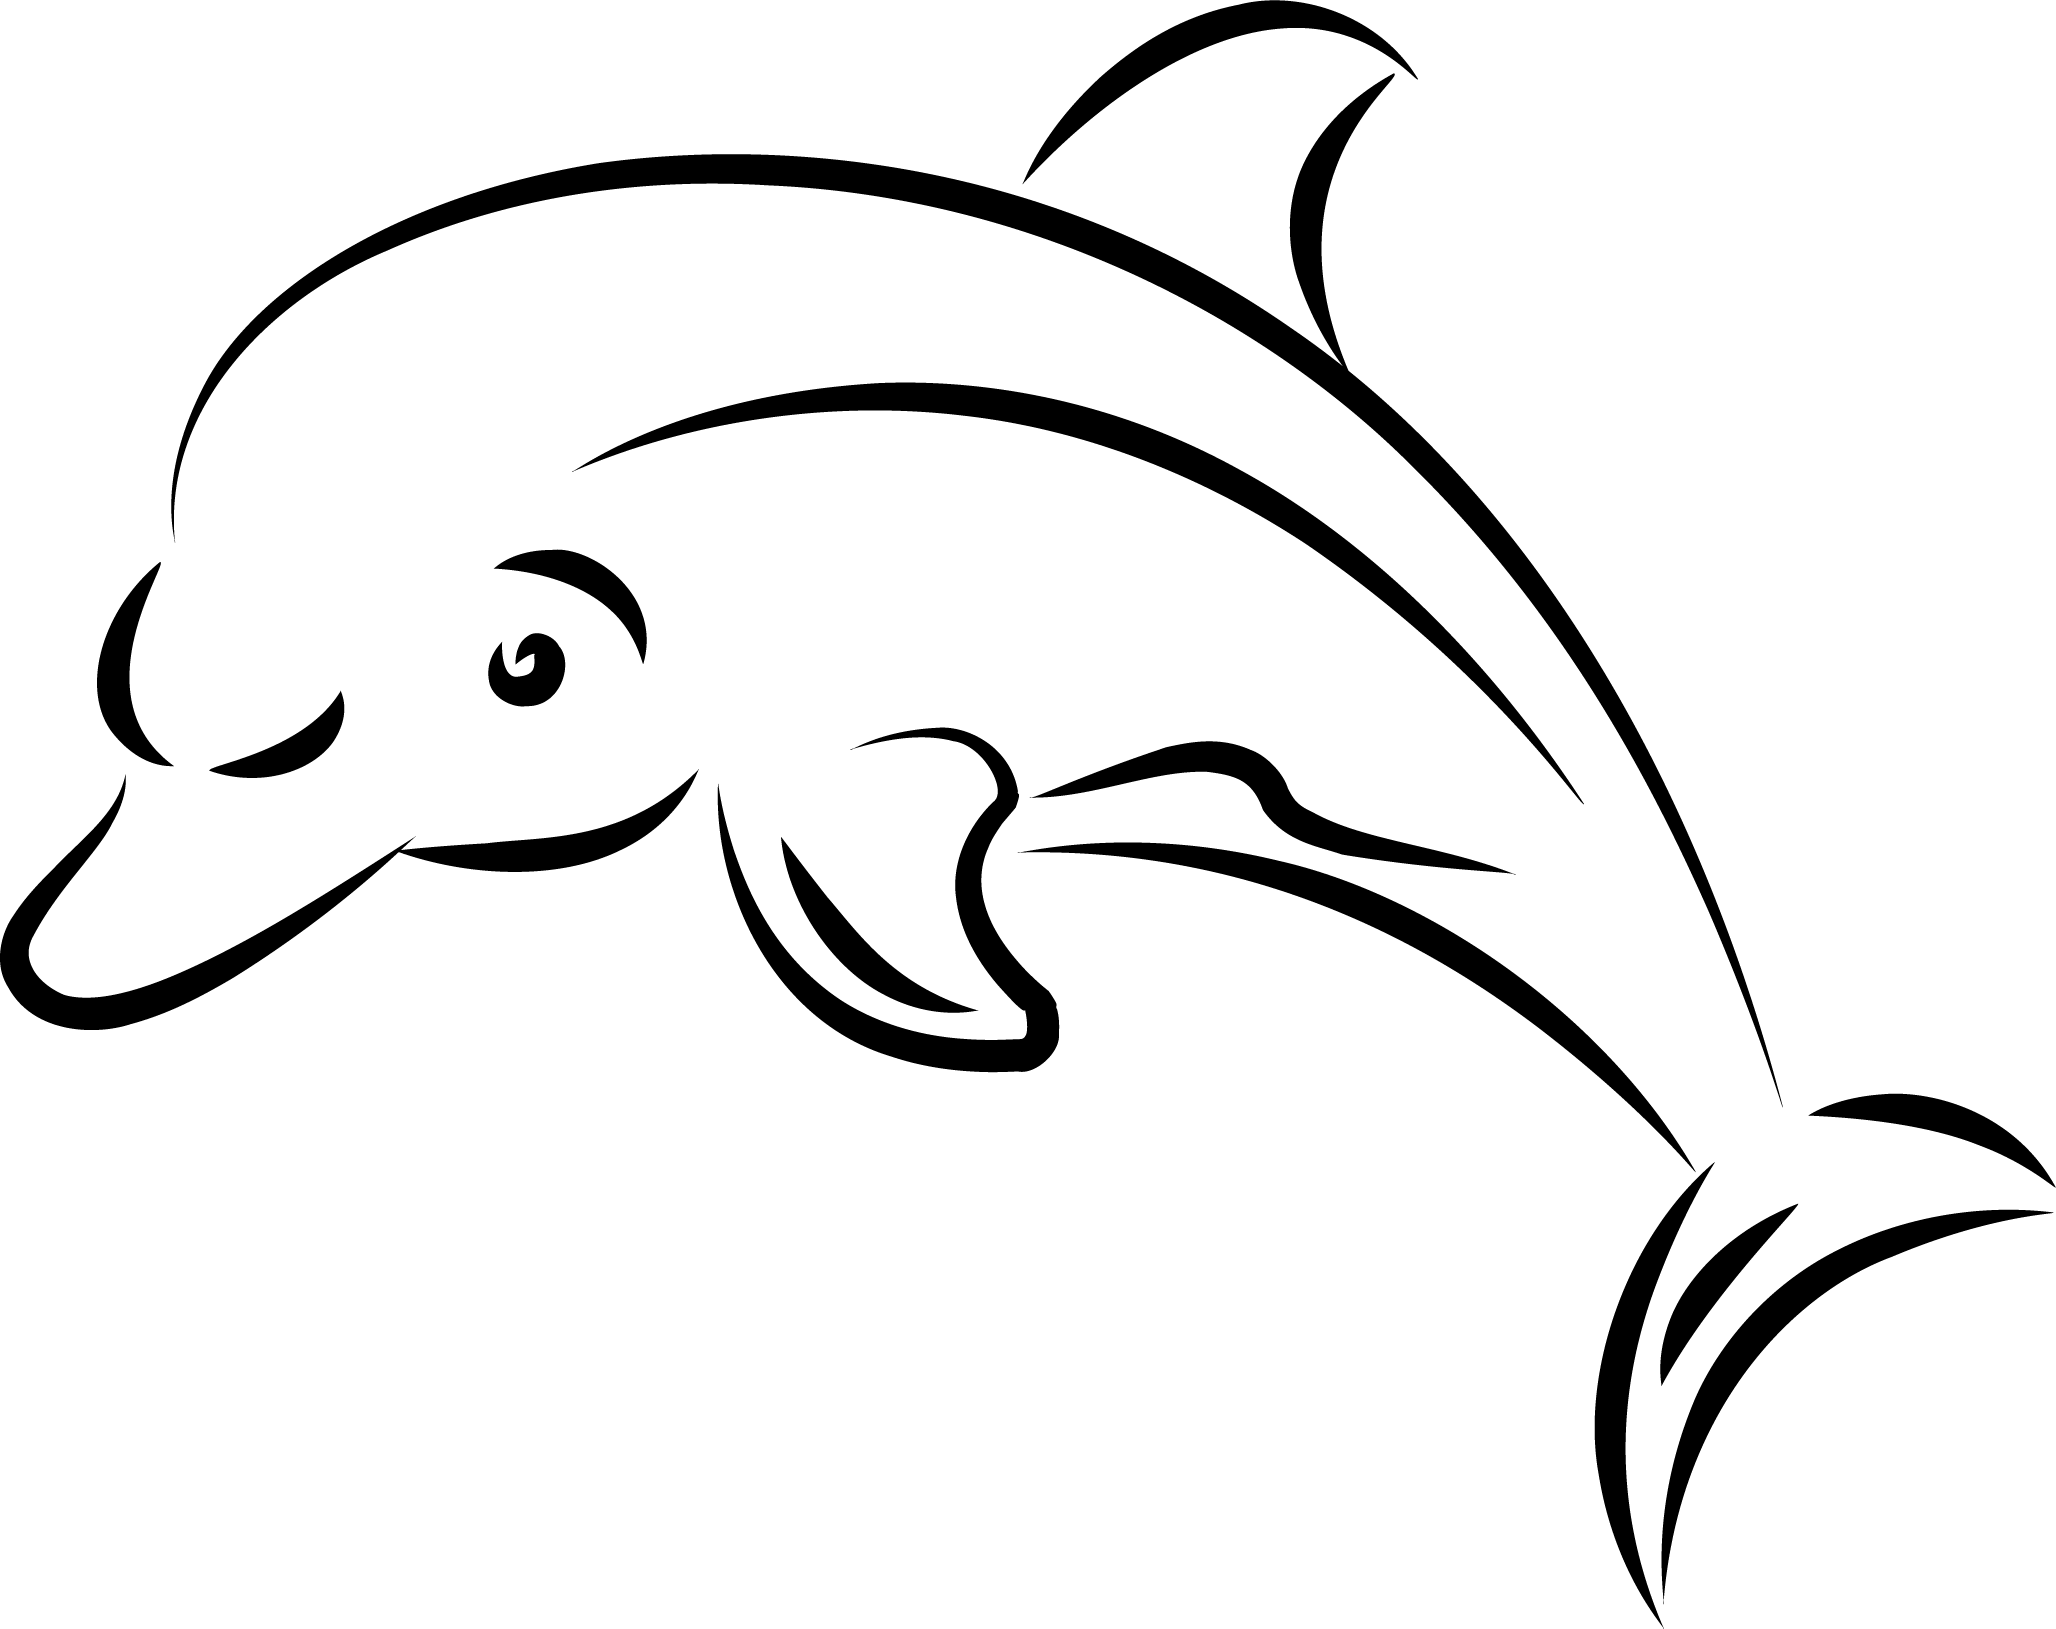 Silhouette Clipart Dolphin Silhouette Dolphin Transparent